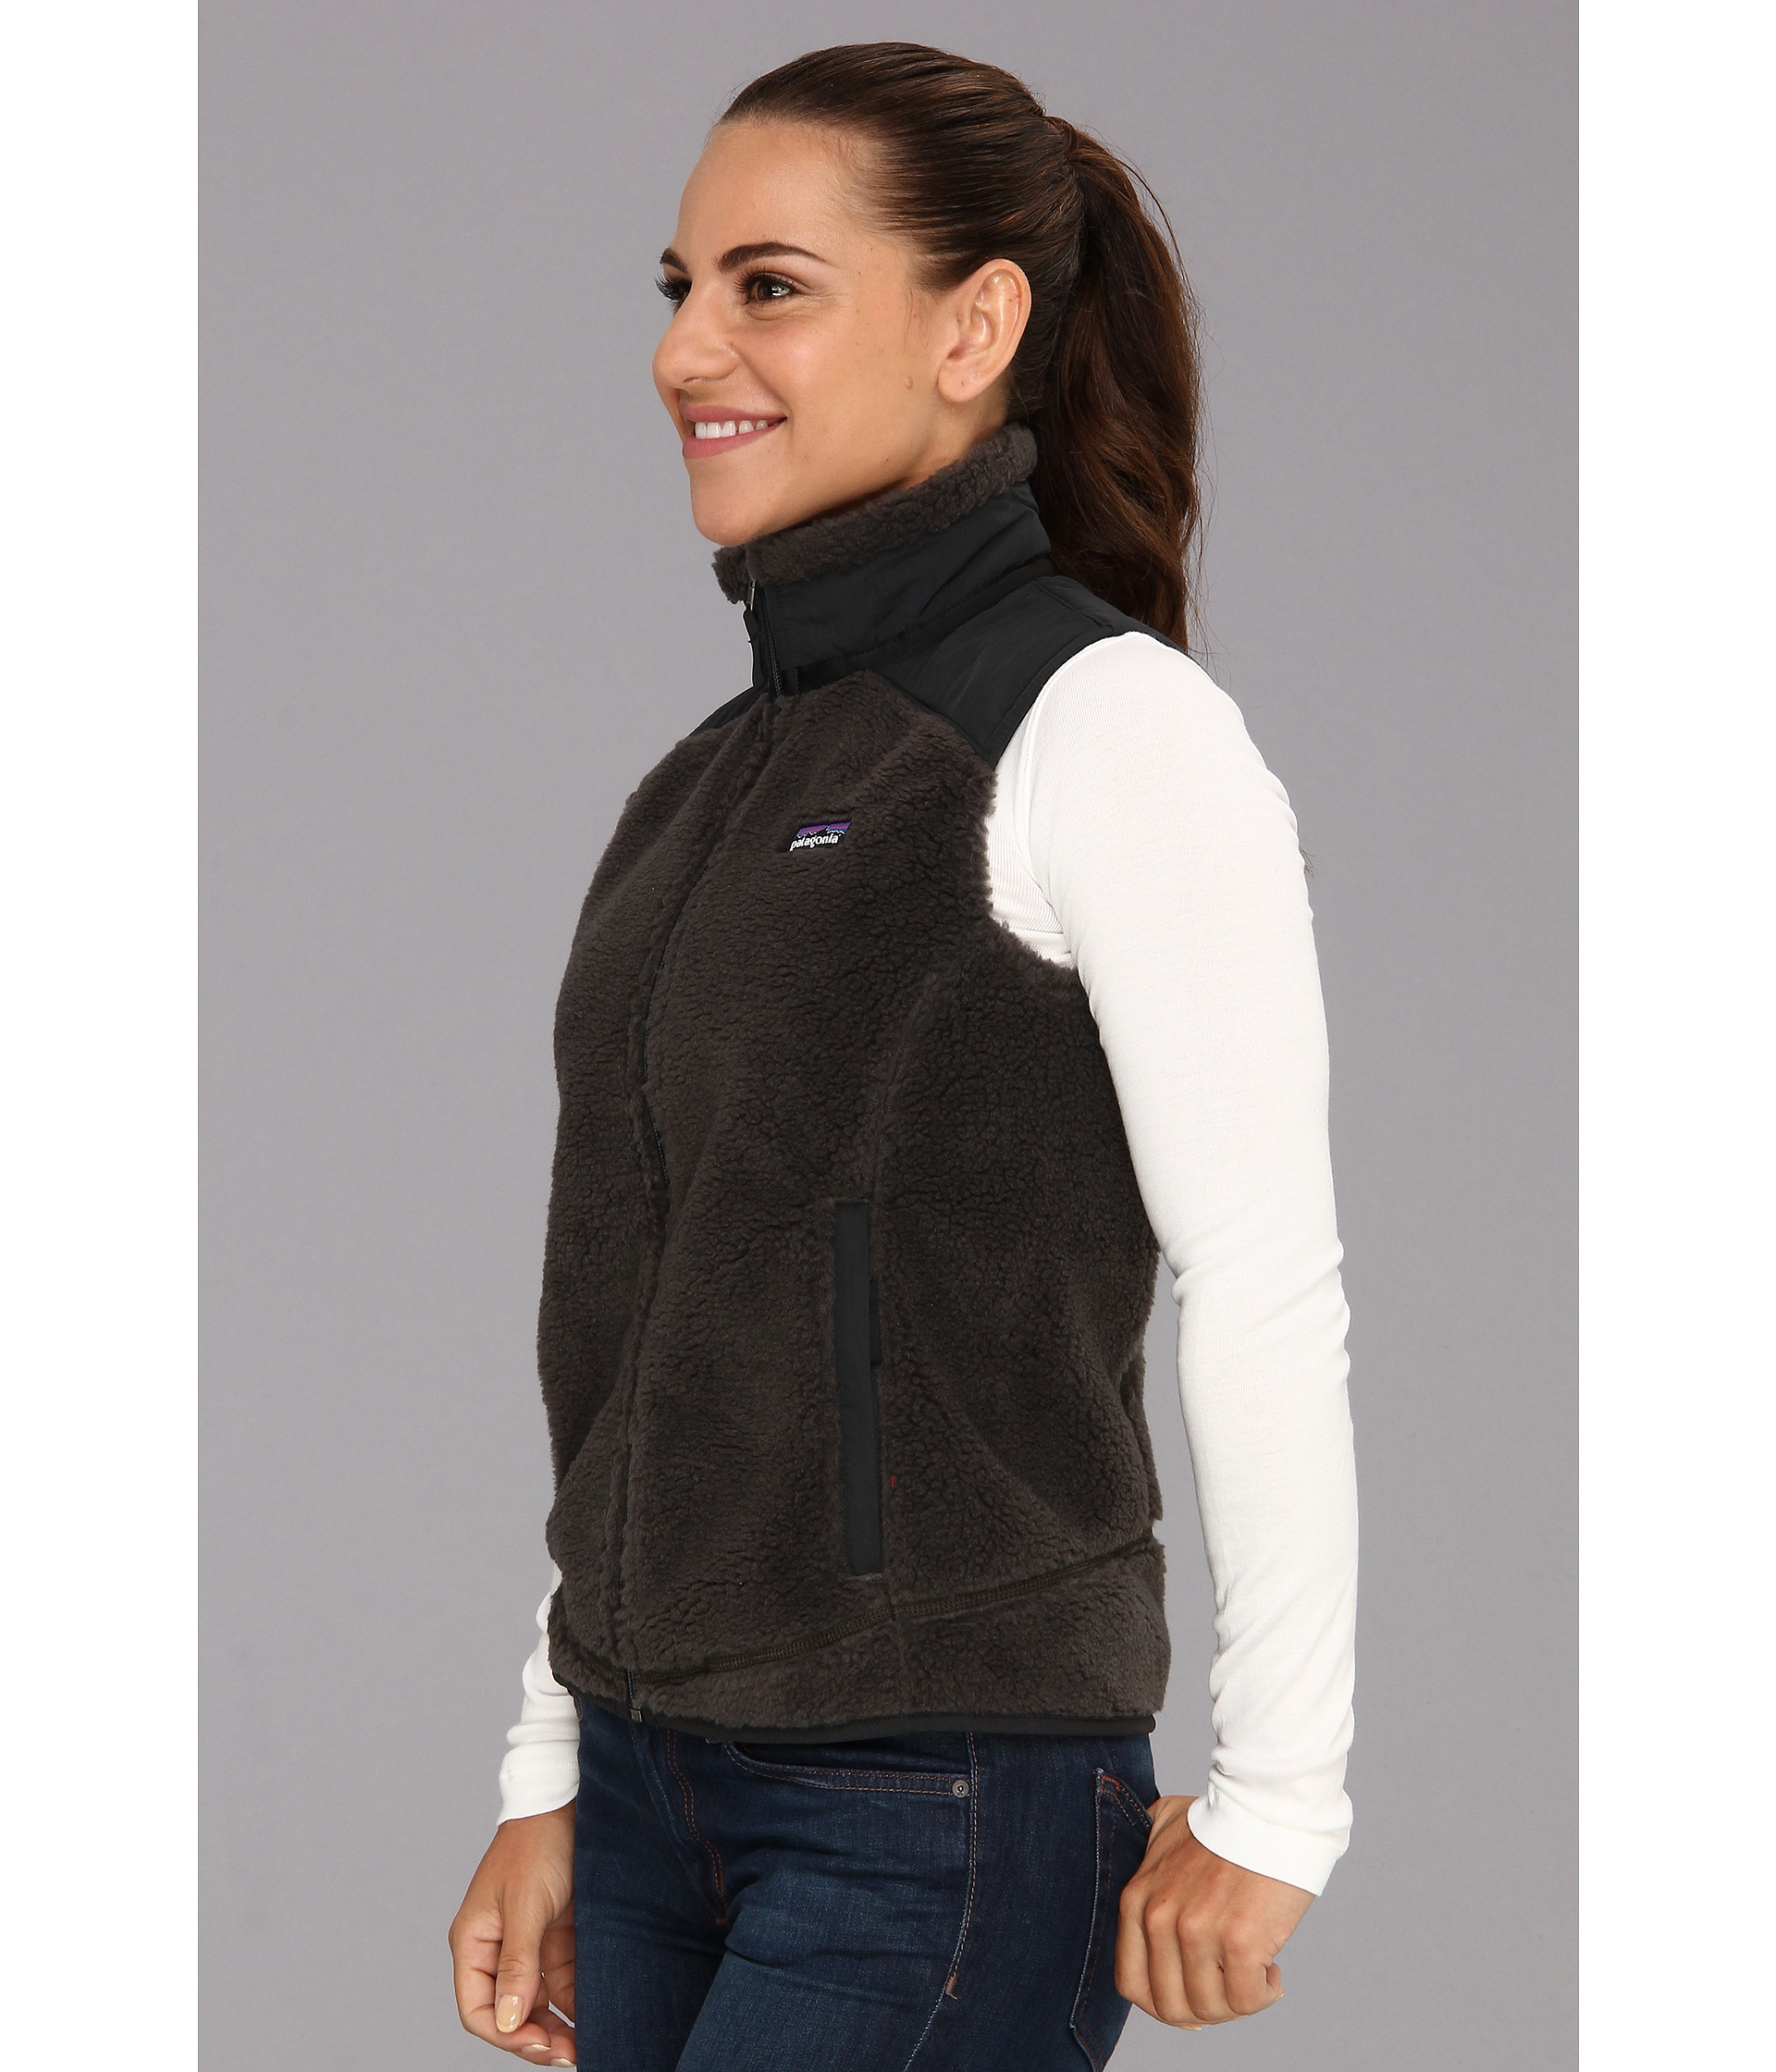 Patagonia Retro X Vest Clothing Shipped Free At Zappos